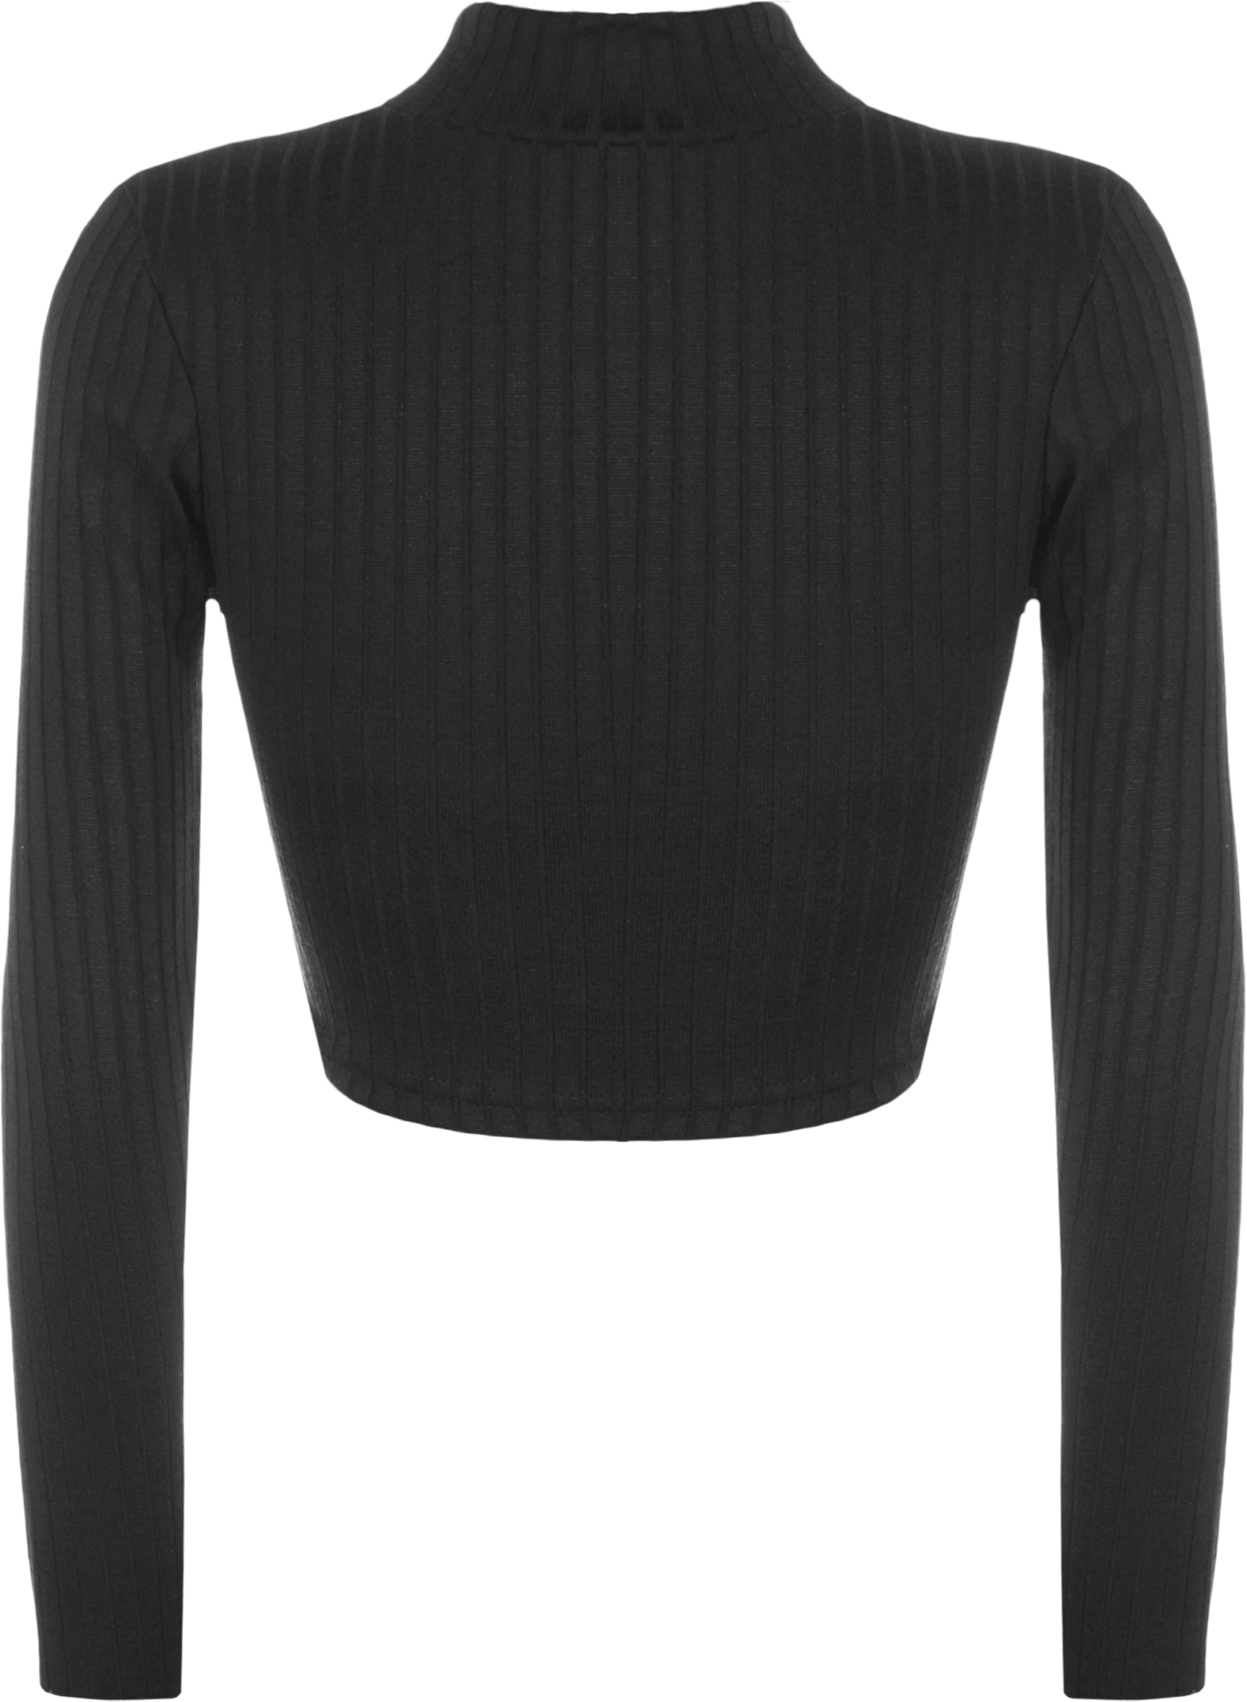 Womens knit ribbed long sleeve stretch short turtle neck t for Ribbed long sleeve shirt